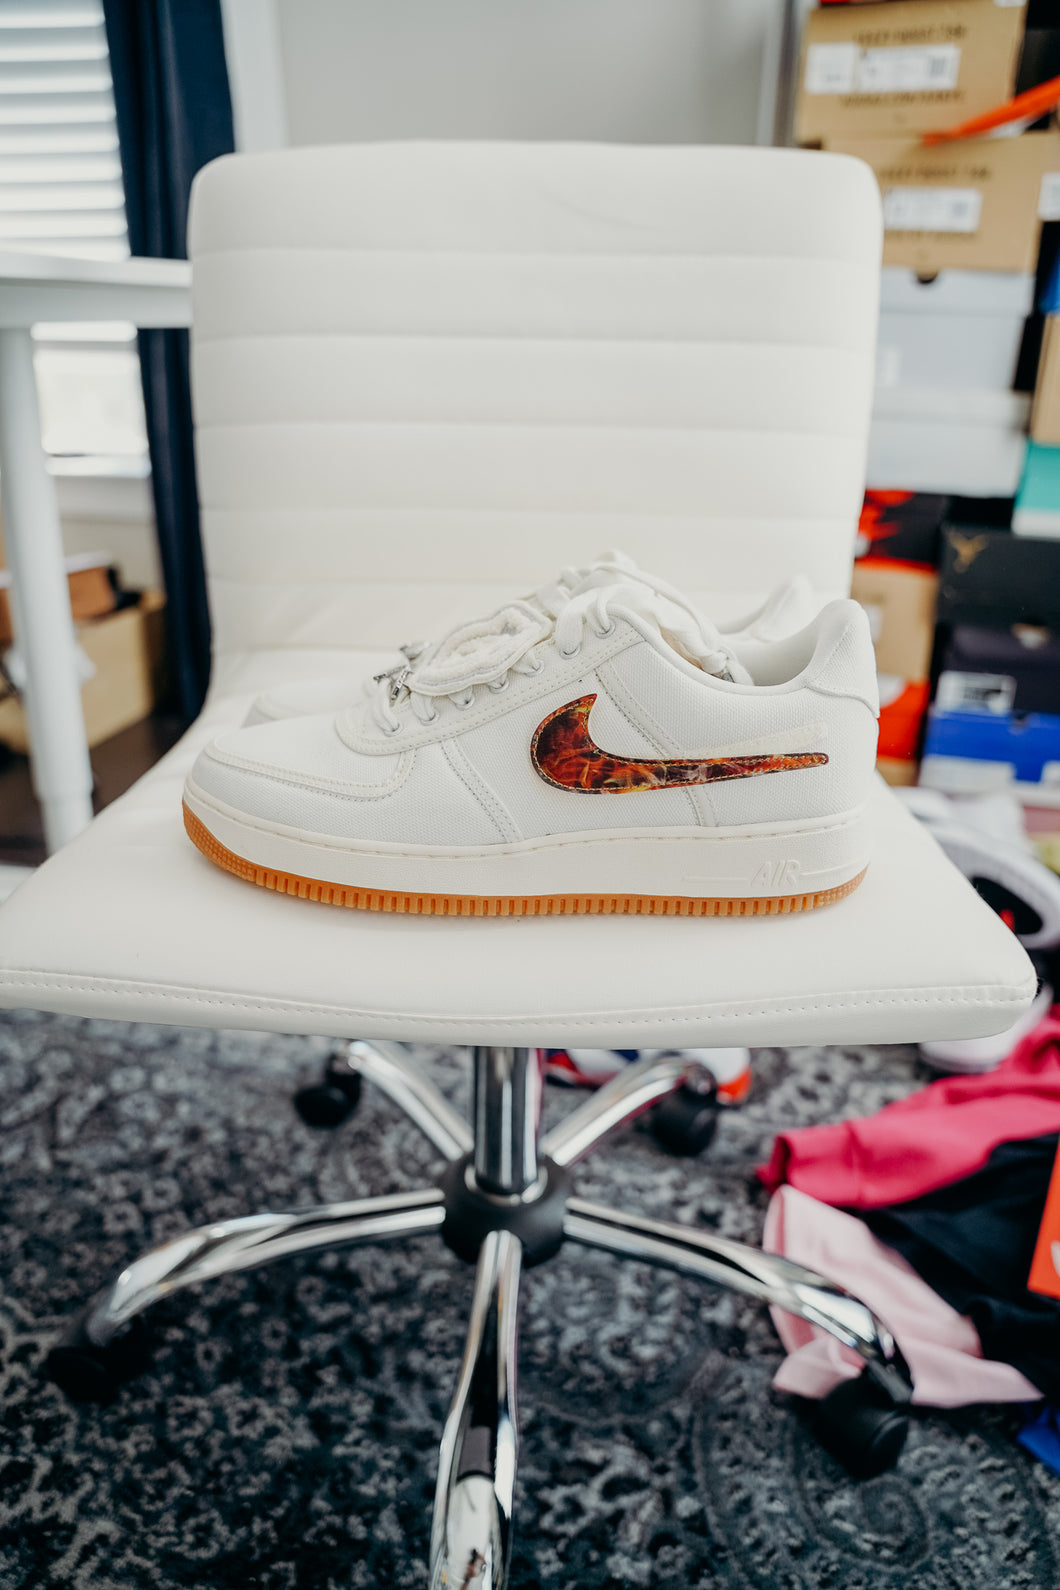 Nike Air Force 1 Low Travis Scott Sail Sz 11